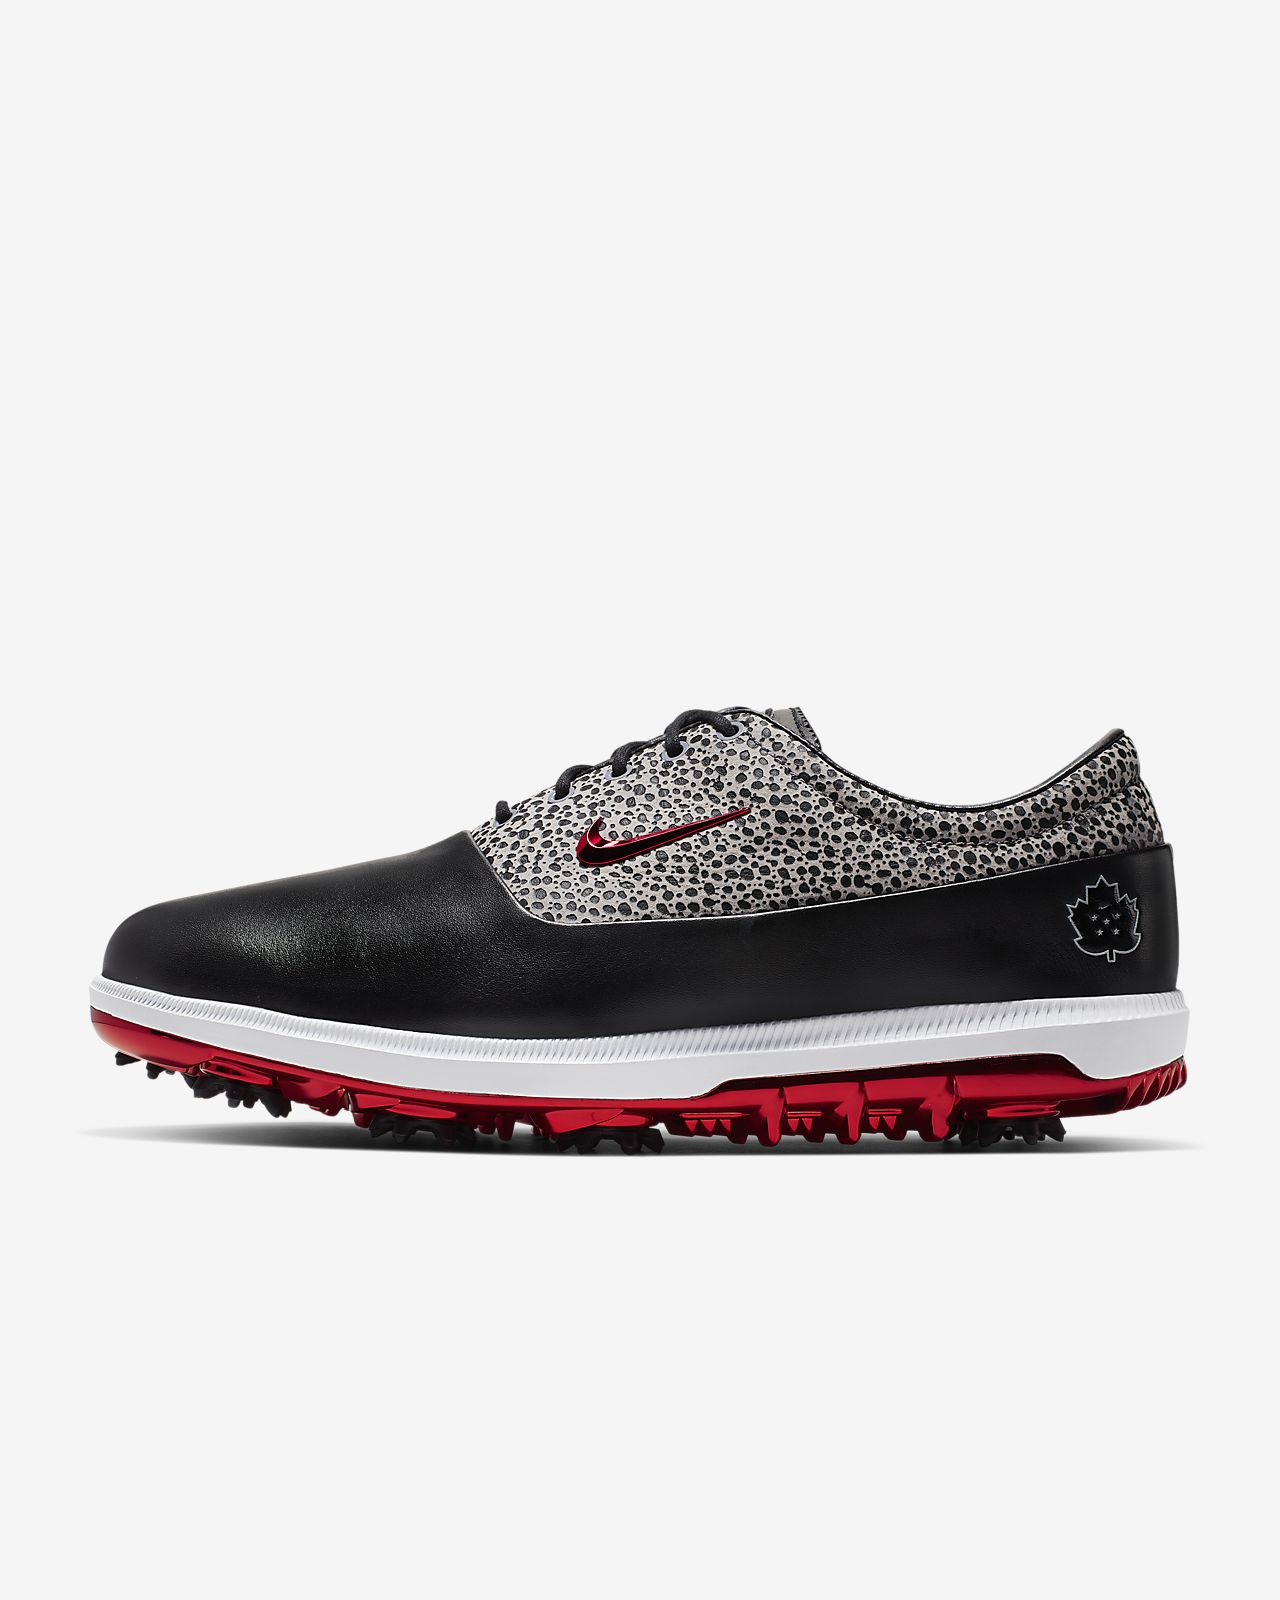 Chaussure de golf Nike Air Zoom Victory Tour NRG pour Homme